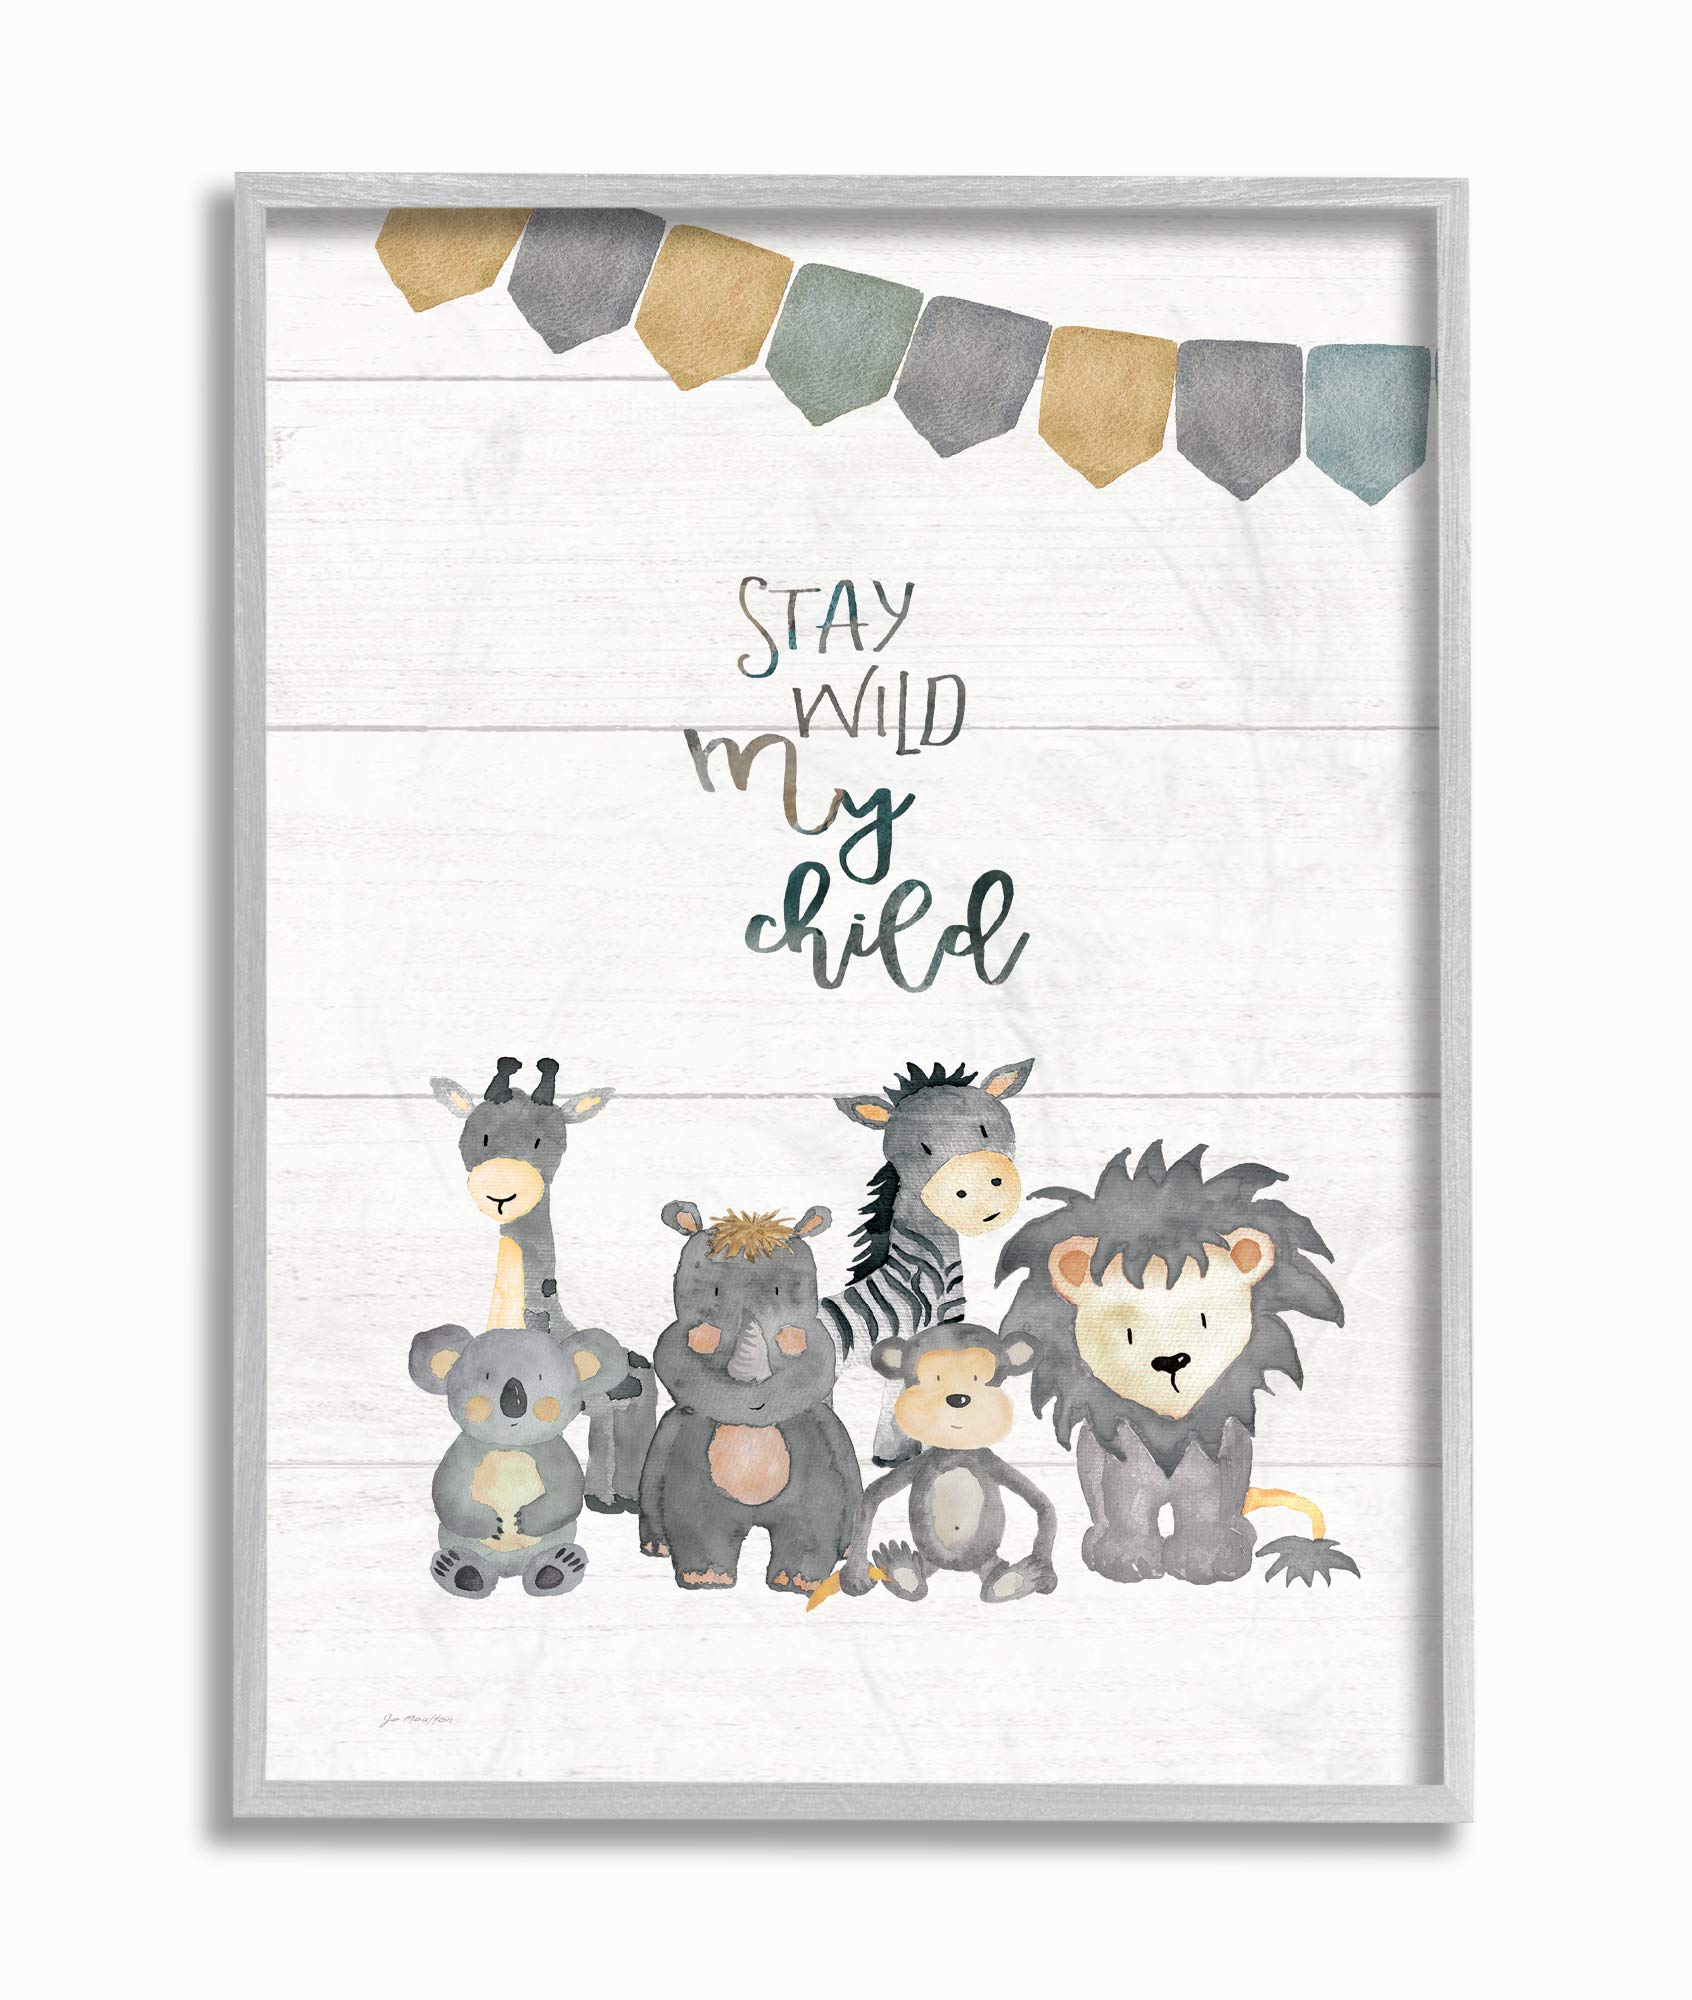 The Kids Room by Stupell Stay Wild My Child Animals Framed Giclee Texturized Art, 16x20, Multi-Color by The Kids Room by Stupell